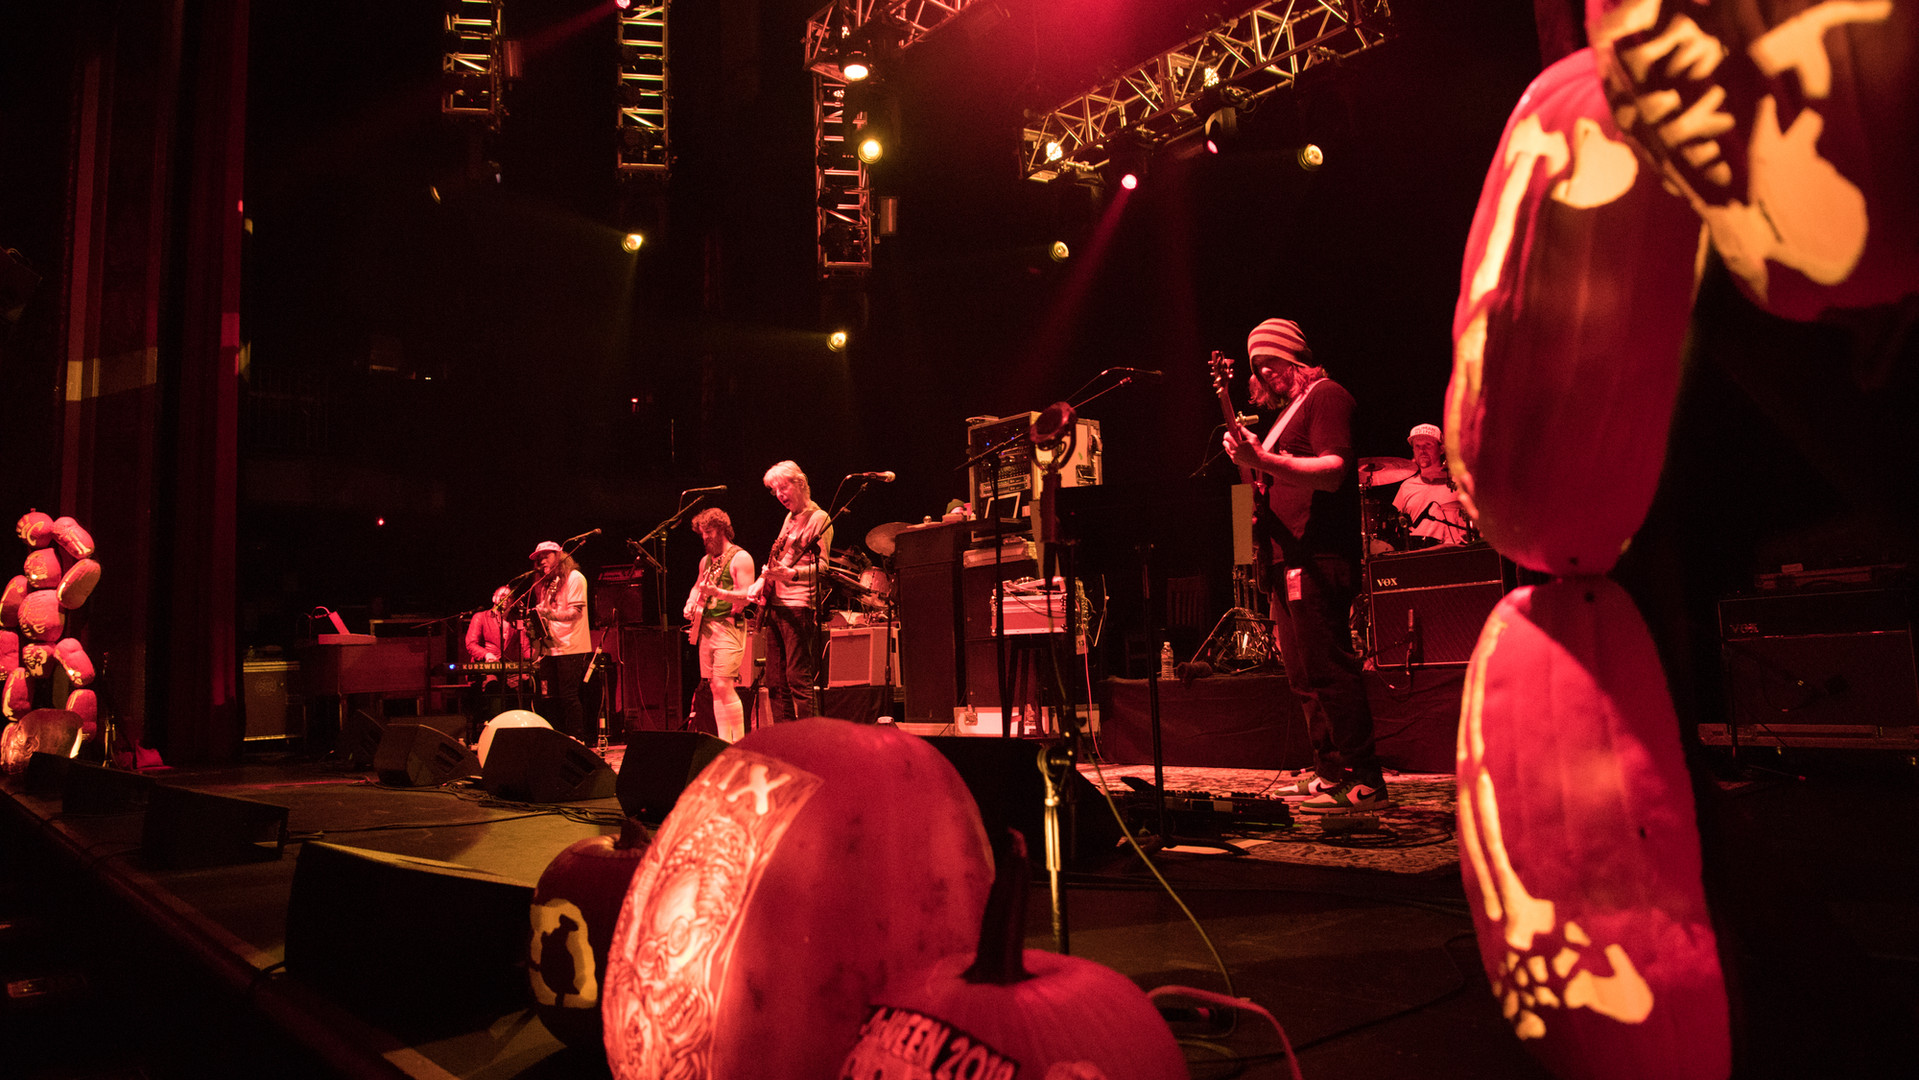 Phil Lesh with Twiddle